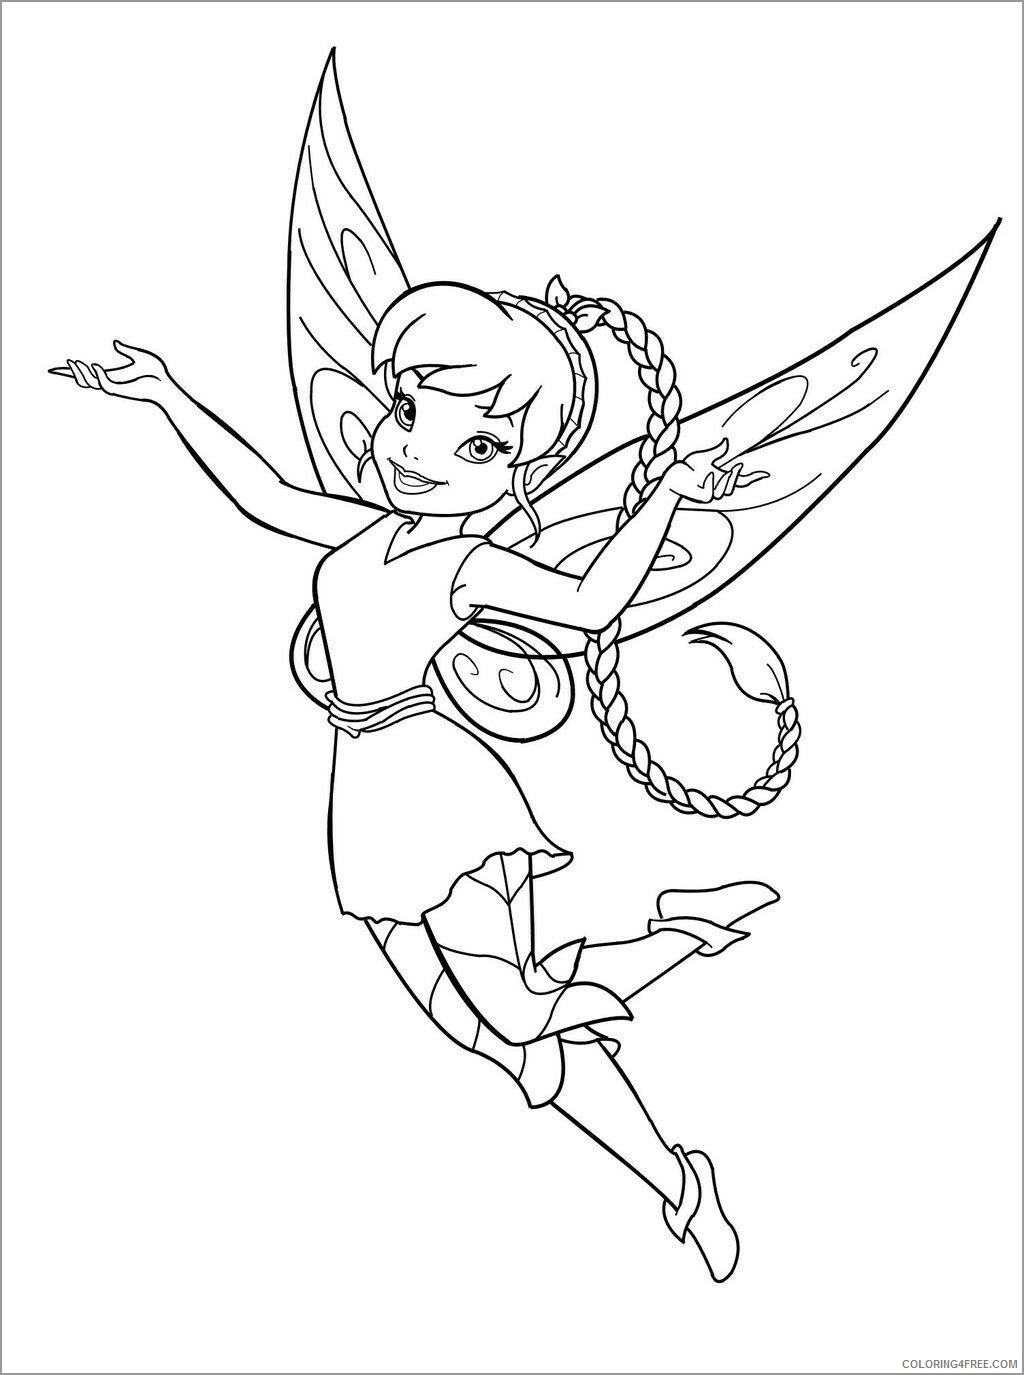 Fairy Coloring Pages printable fairy to print Printable 2021 2399 Coloring4free